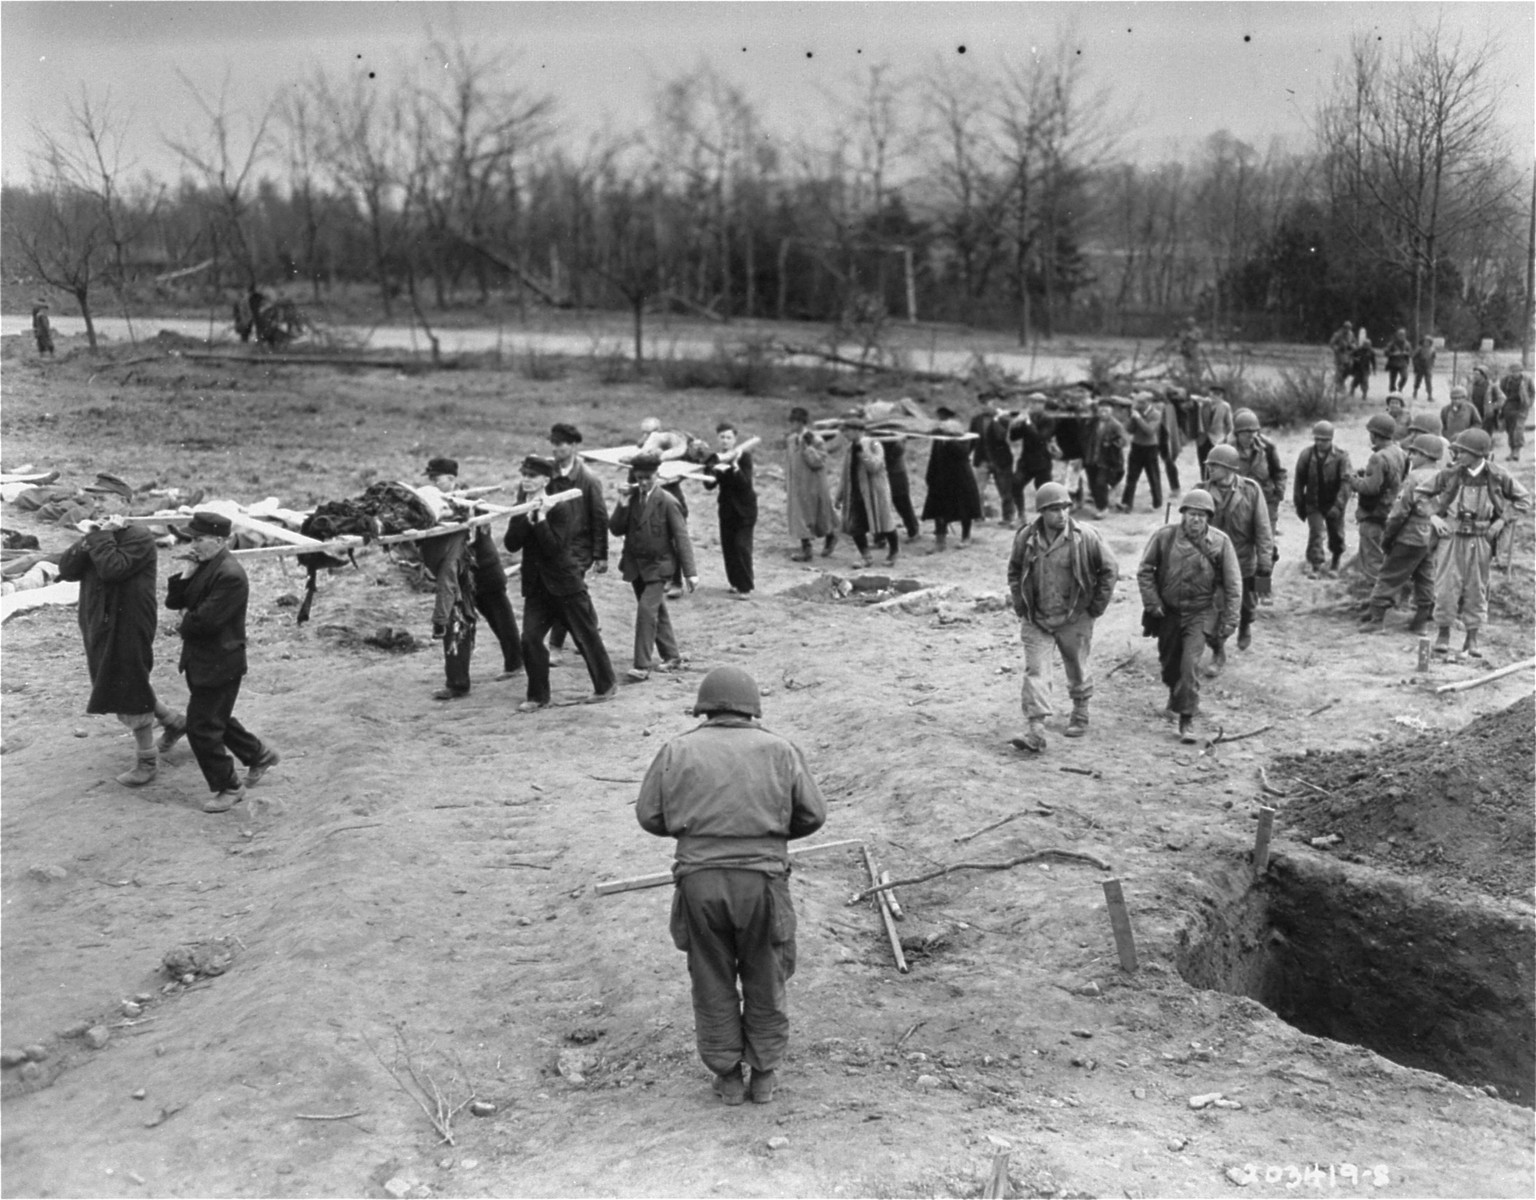 German civilians from the town of Nordhausen carry the bodies of prisoners from the Nordhausen concentration camp to mass graves.